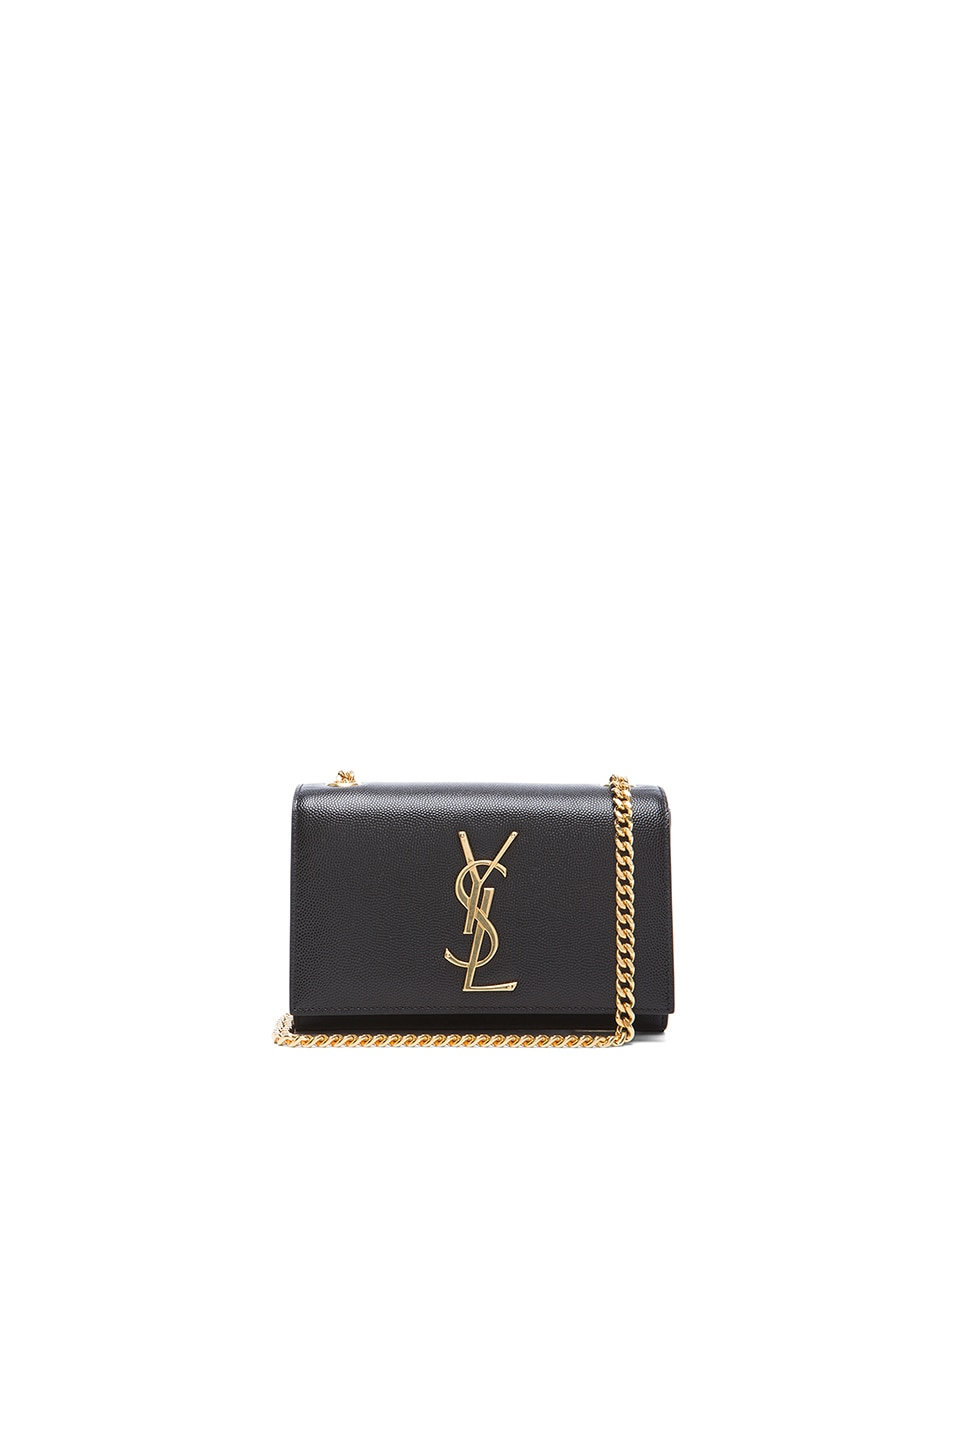 Image 1 of Saint Laurent Small Monogramme Chain Bag in Black